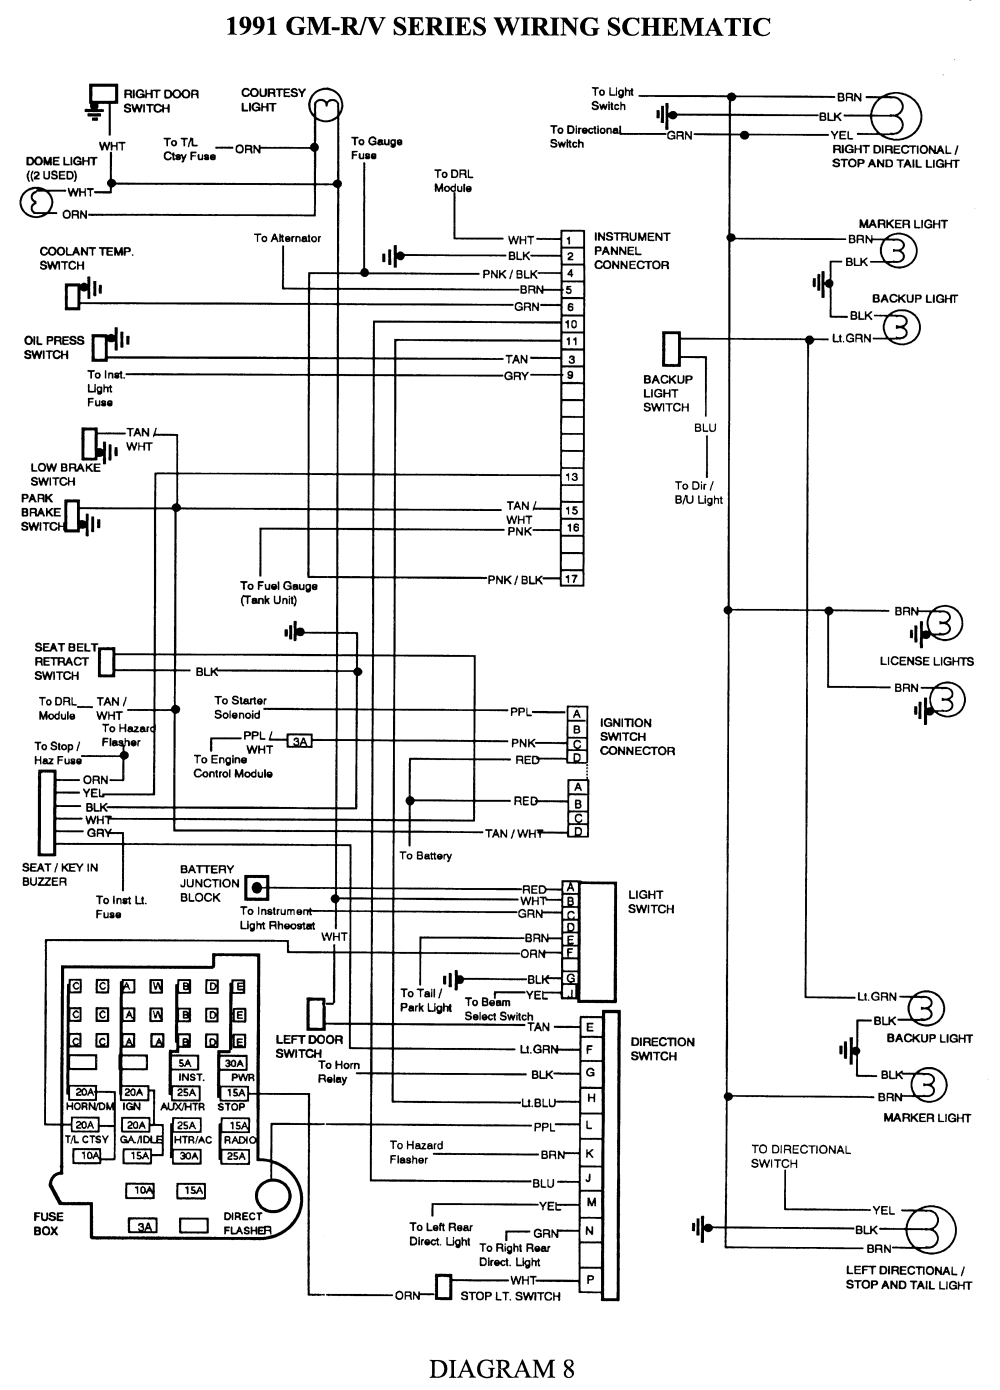 Wiring Diagram For A 1995 Chevy Blazer